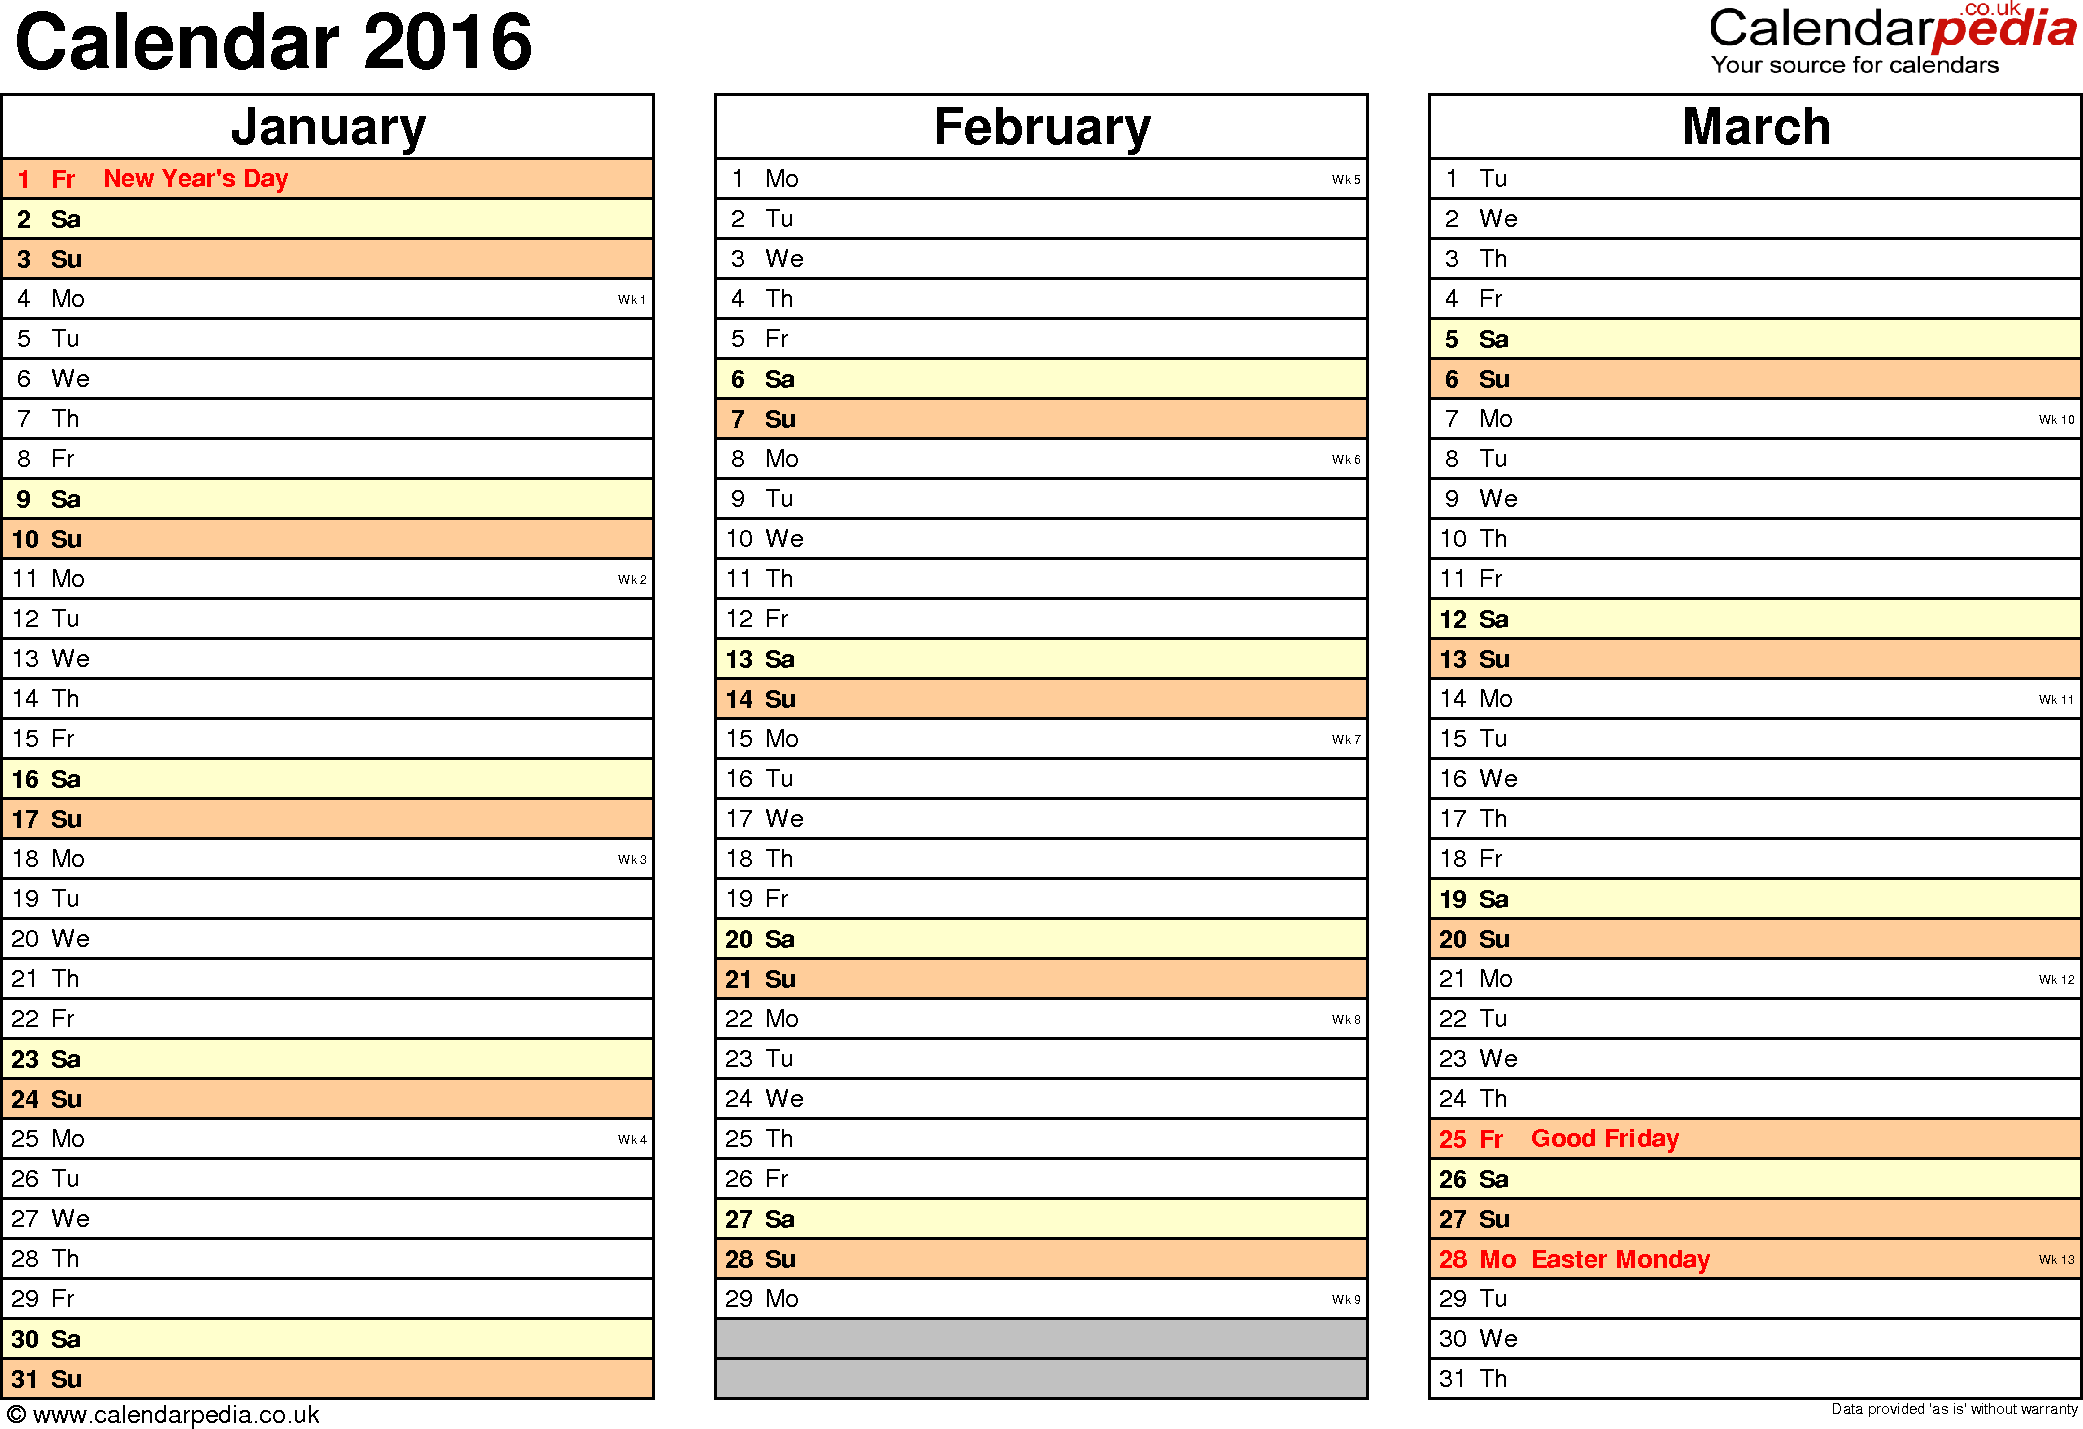 Template 5: Yearly calendar 2016 as Word template, landscape orientation, 4 pages, months horizontally, days vertically, with UK bank holidays and week numbers